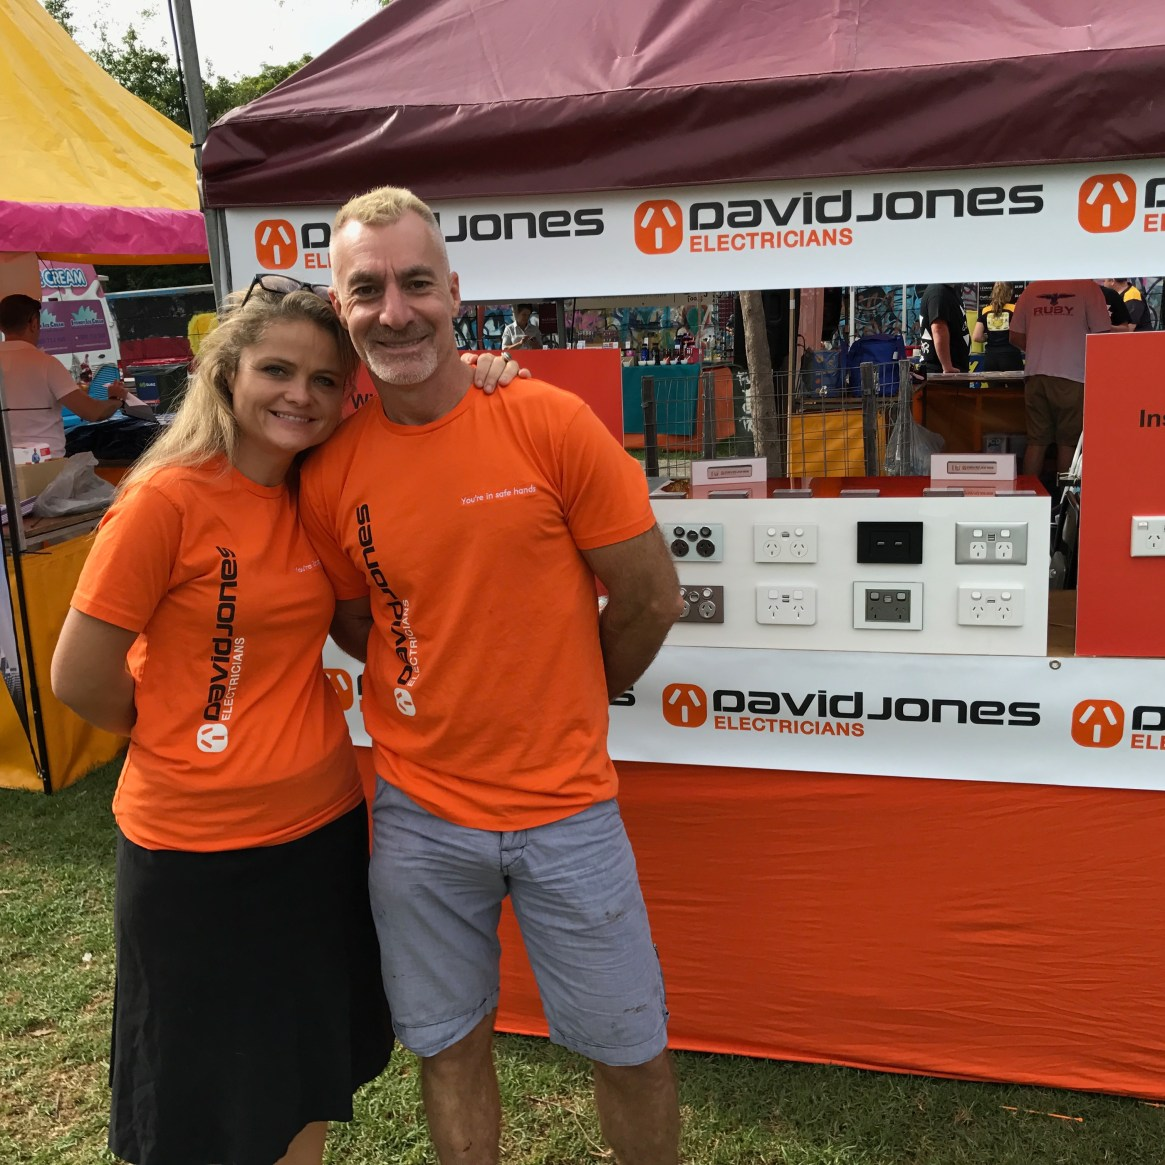 David and his team from DJ Electricians joined us again this year. David is a Networker Member of the SGLBA.